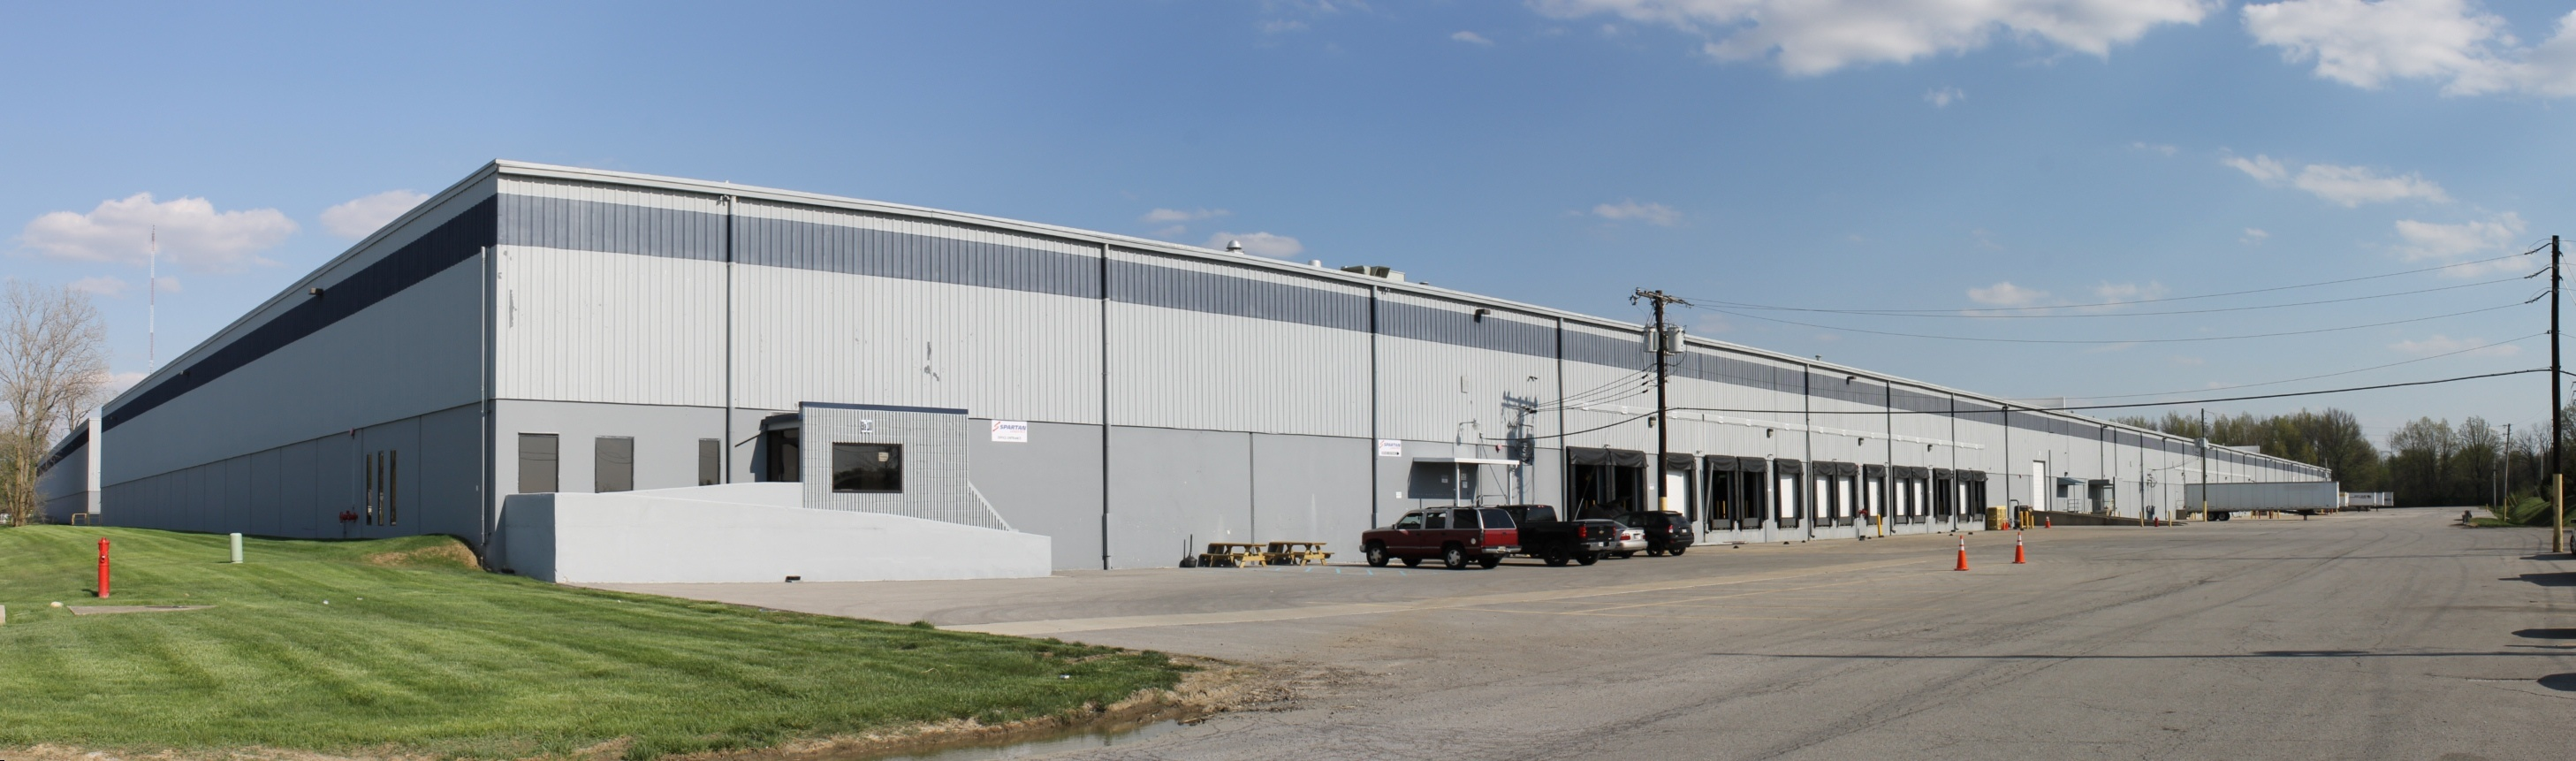 Franklin Rd Indianapolis, IN Warehouse Space for Lease